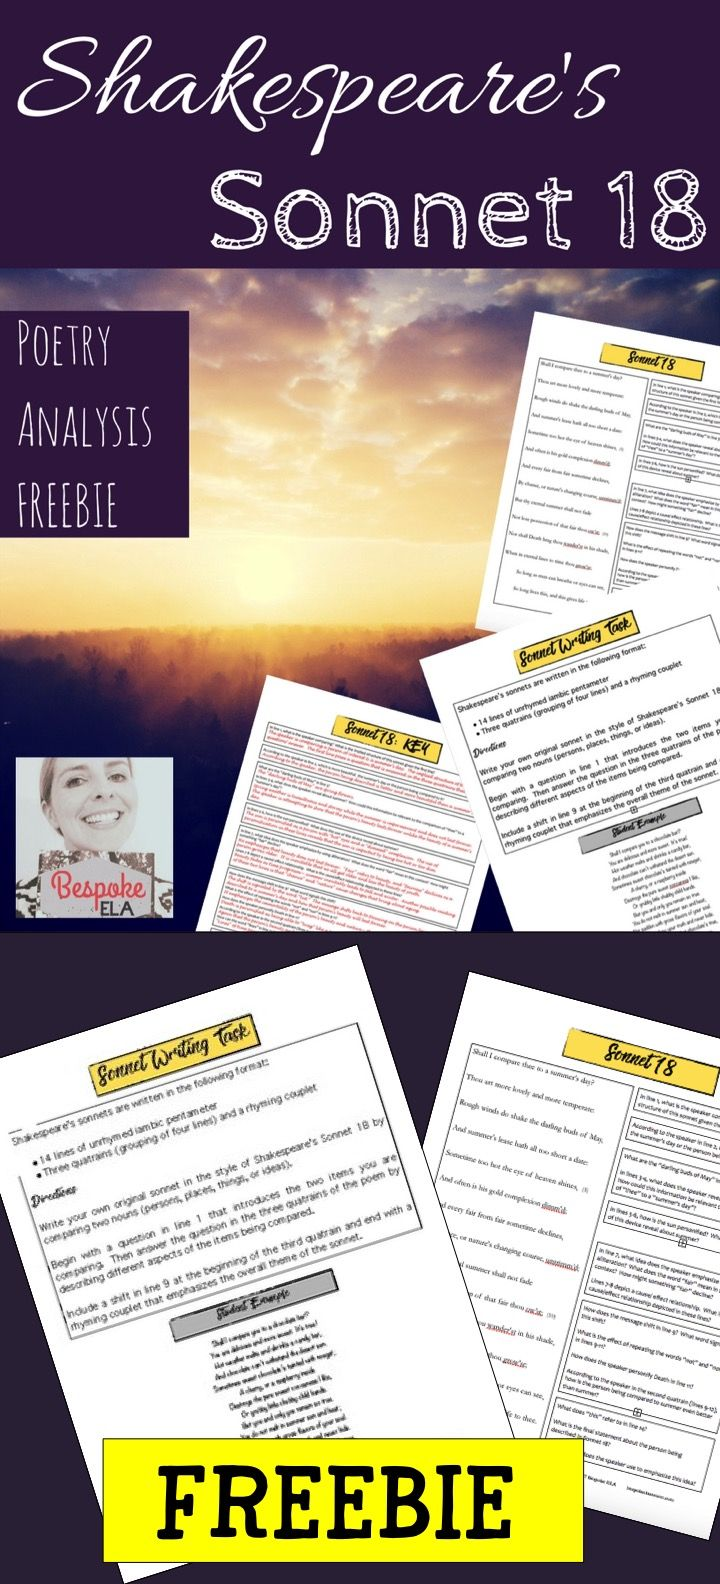 In this FREEBIE by Bespoke ELA, you will find a close reading activity for Shakespeare's Sonnet 18 that includes an answer key to the close reading questions. This activity also asks students to write their own Shakespearean sonnets in which they compare two things (or nouns) in Shakespearean sonnet form-- including 14 lines of iambic pentameter with a shift and rhyming couplet in question/answer format. A student poem example is included.